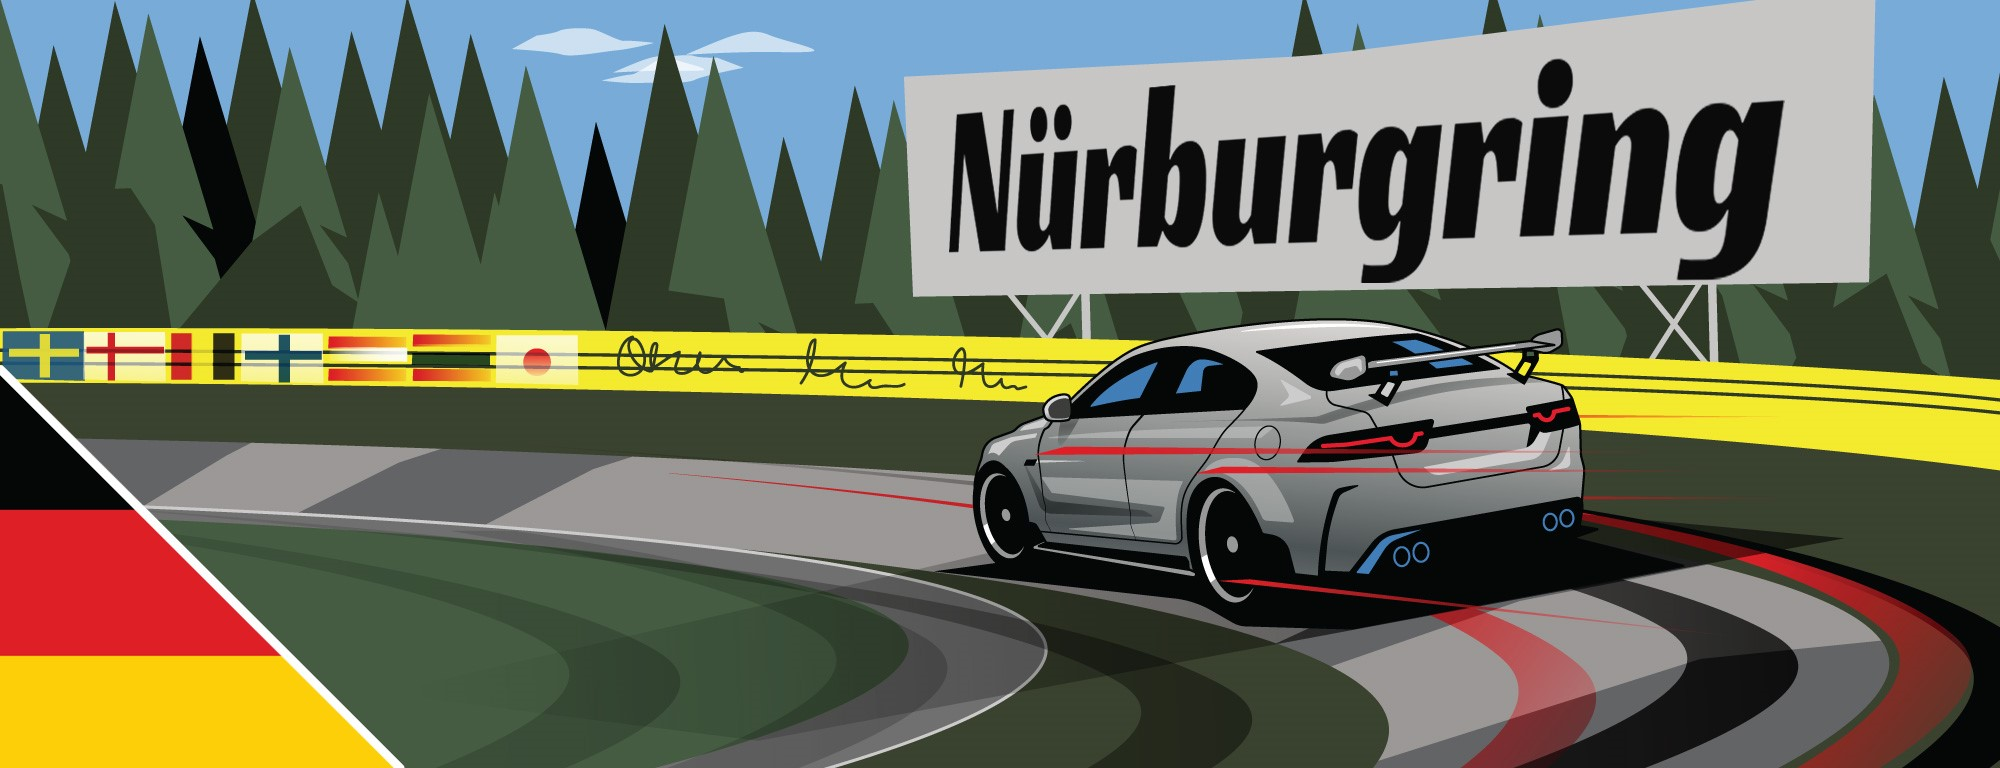 Circuit Days - Nürburgring